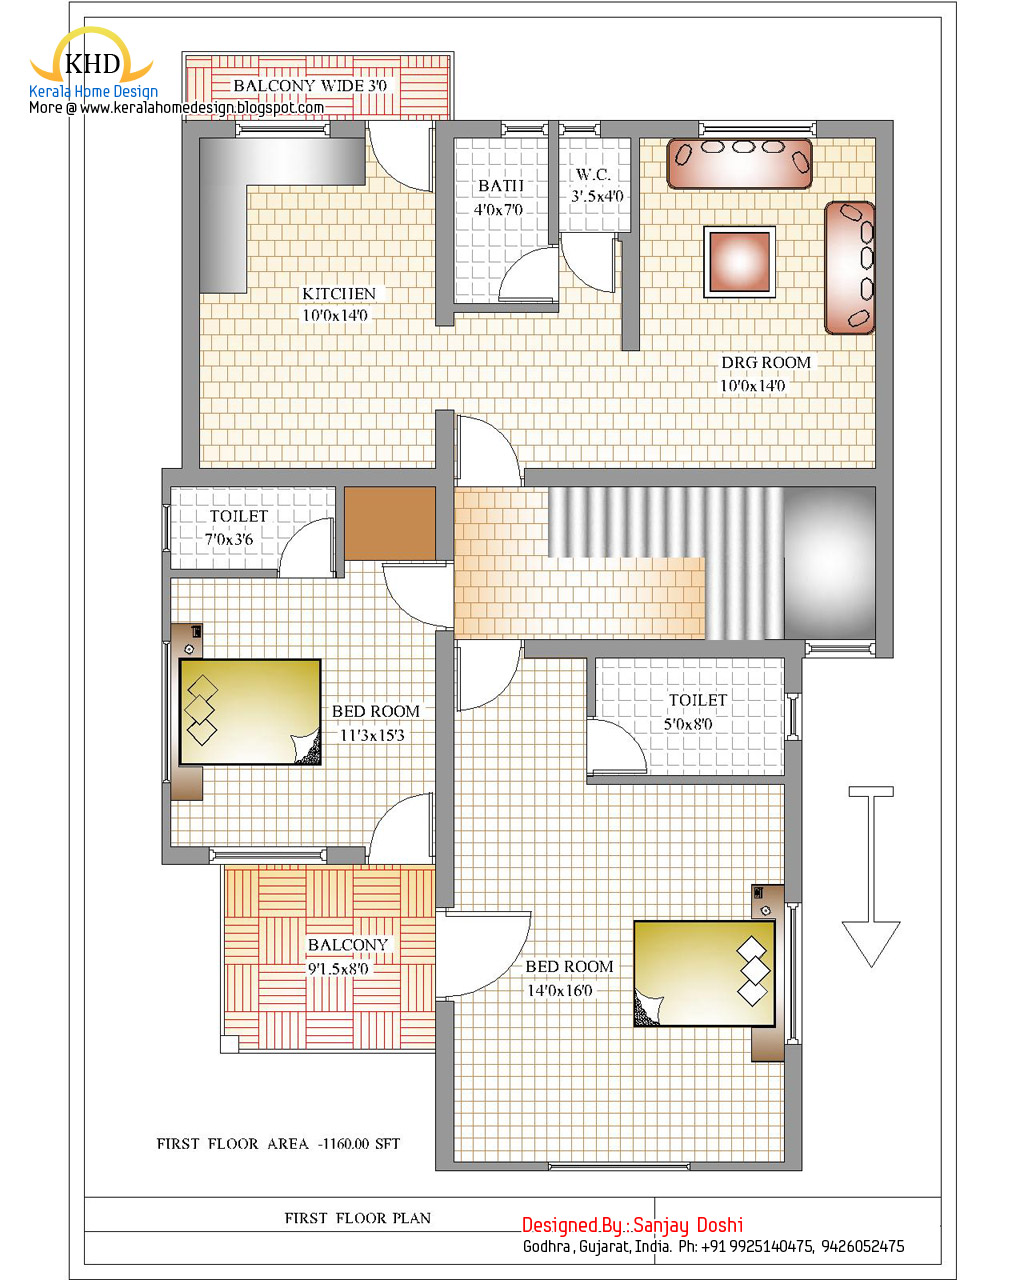 Interior Design For Small Apartments In Chennai